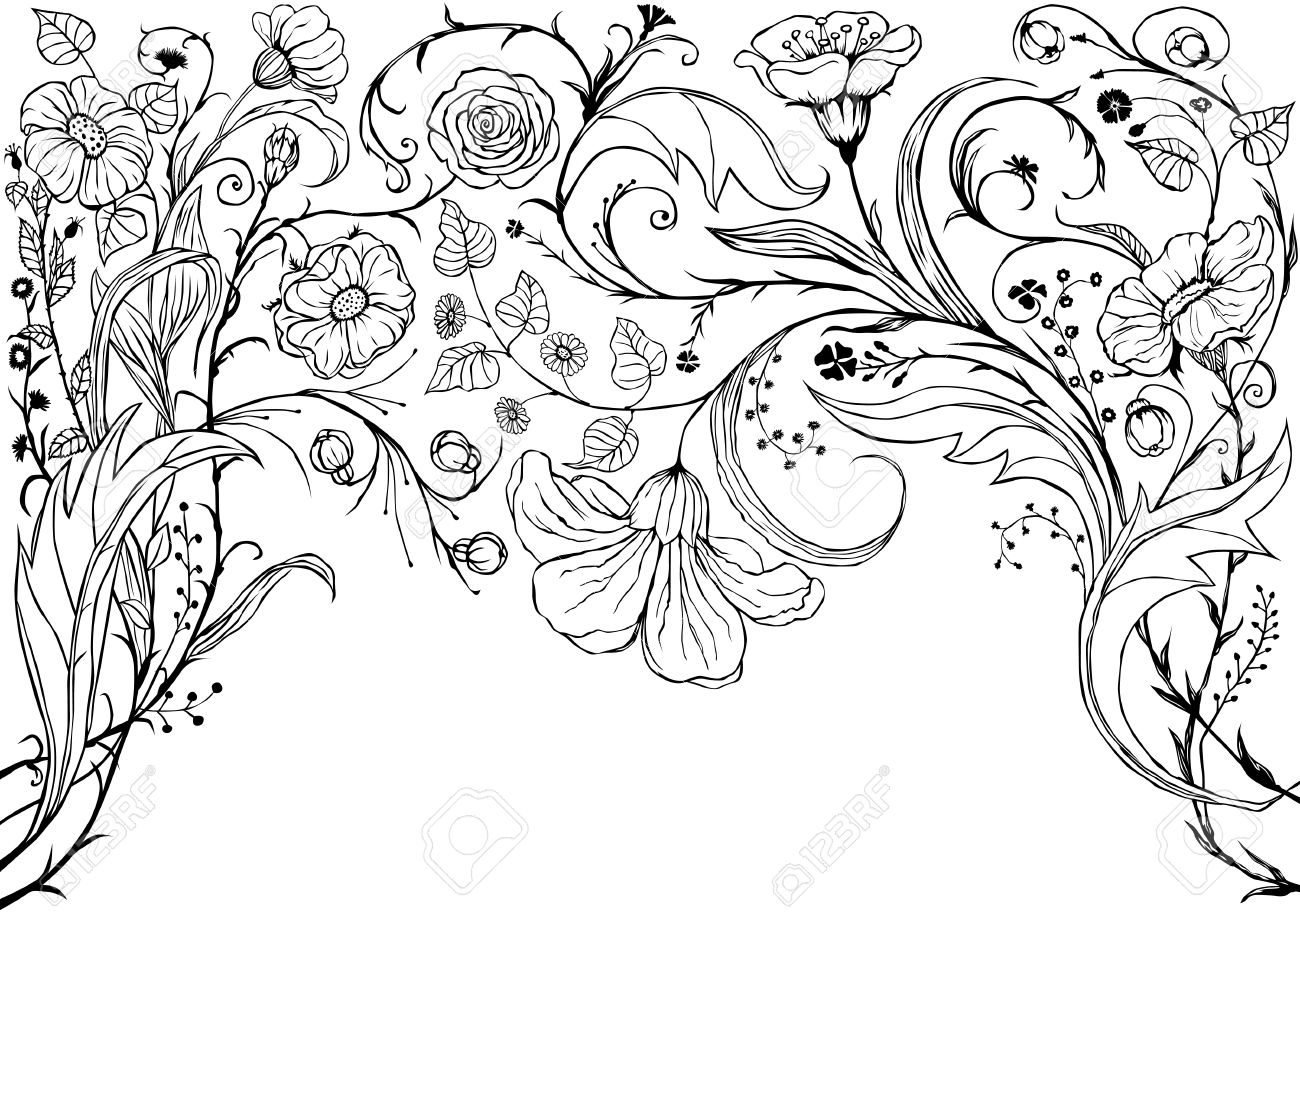 1300x1107 Flowers Different Drawings Decorative Floral Background